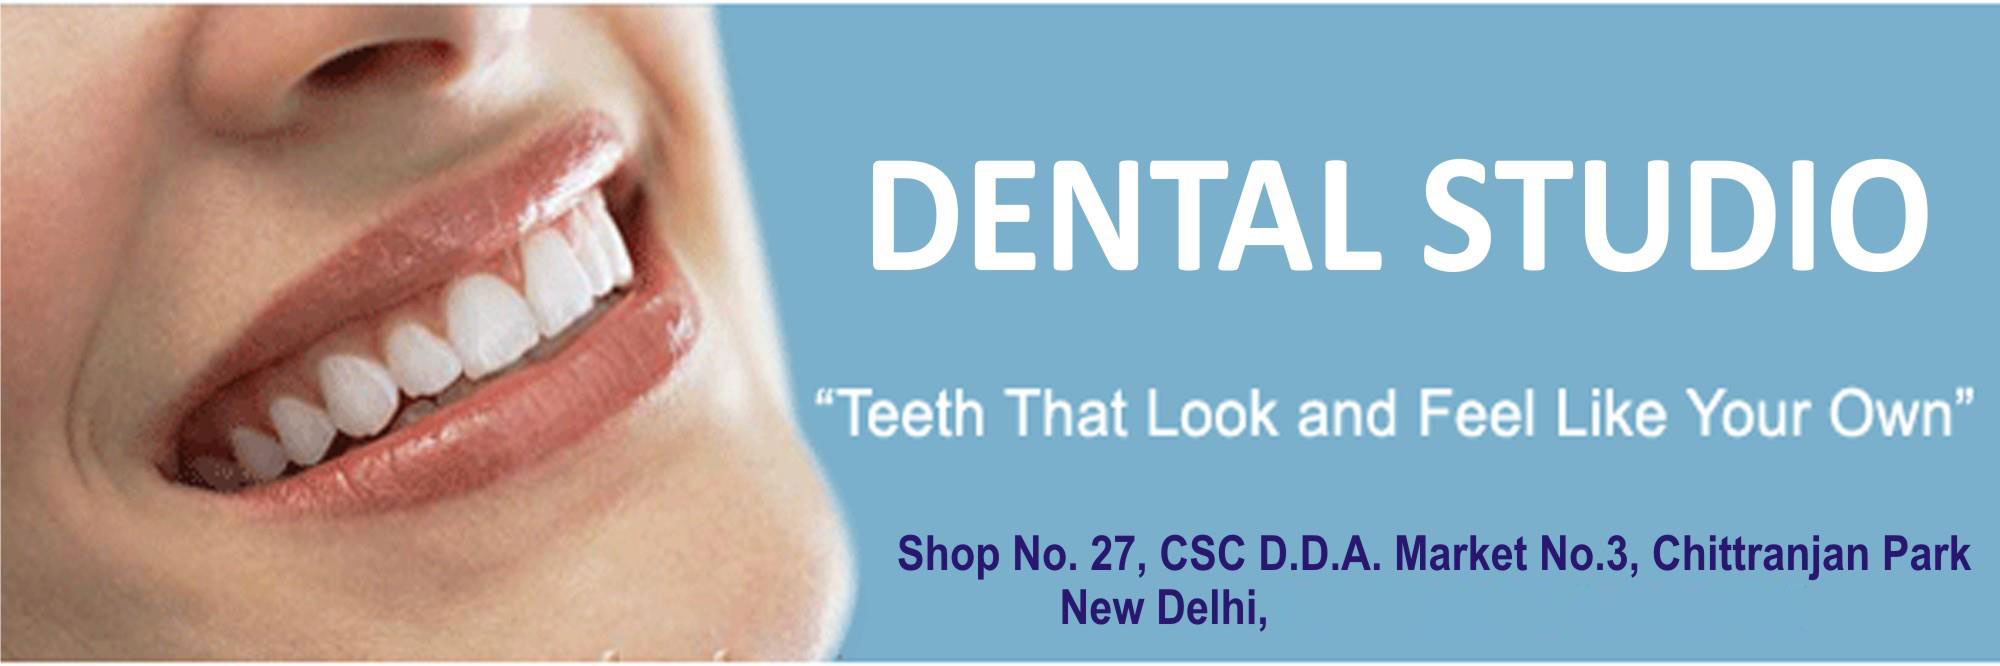 Dr. Sanjay Kumar's Dental Studio